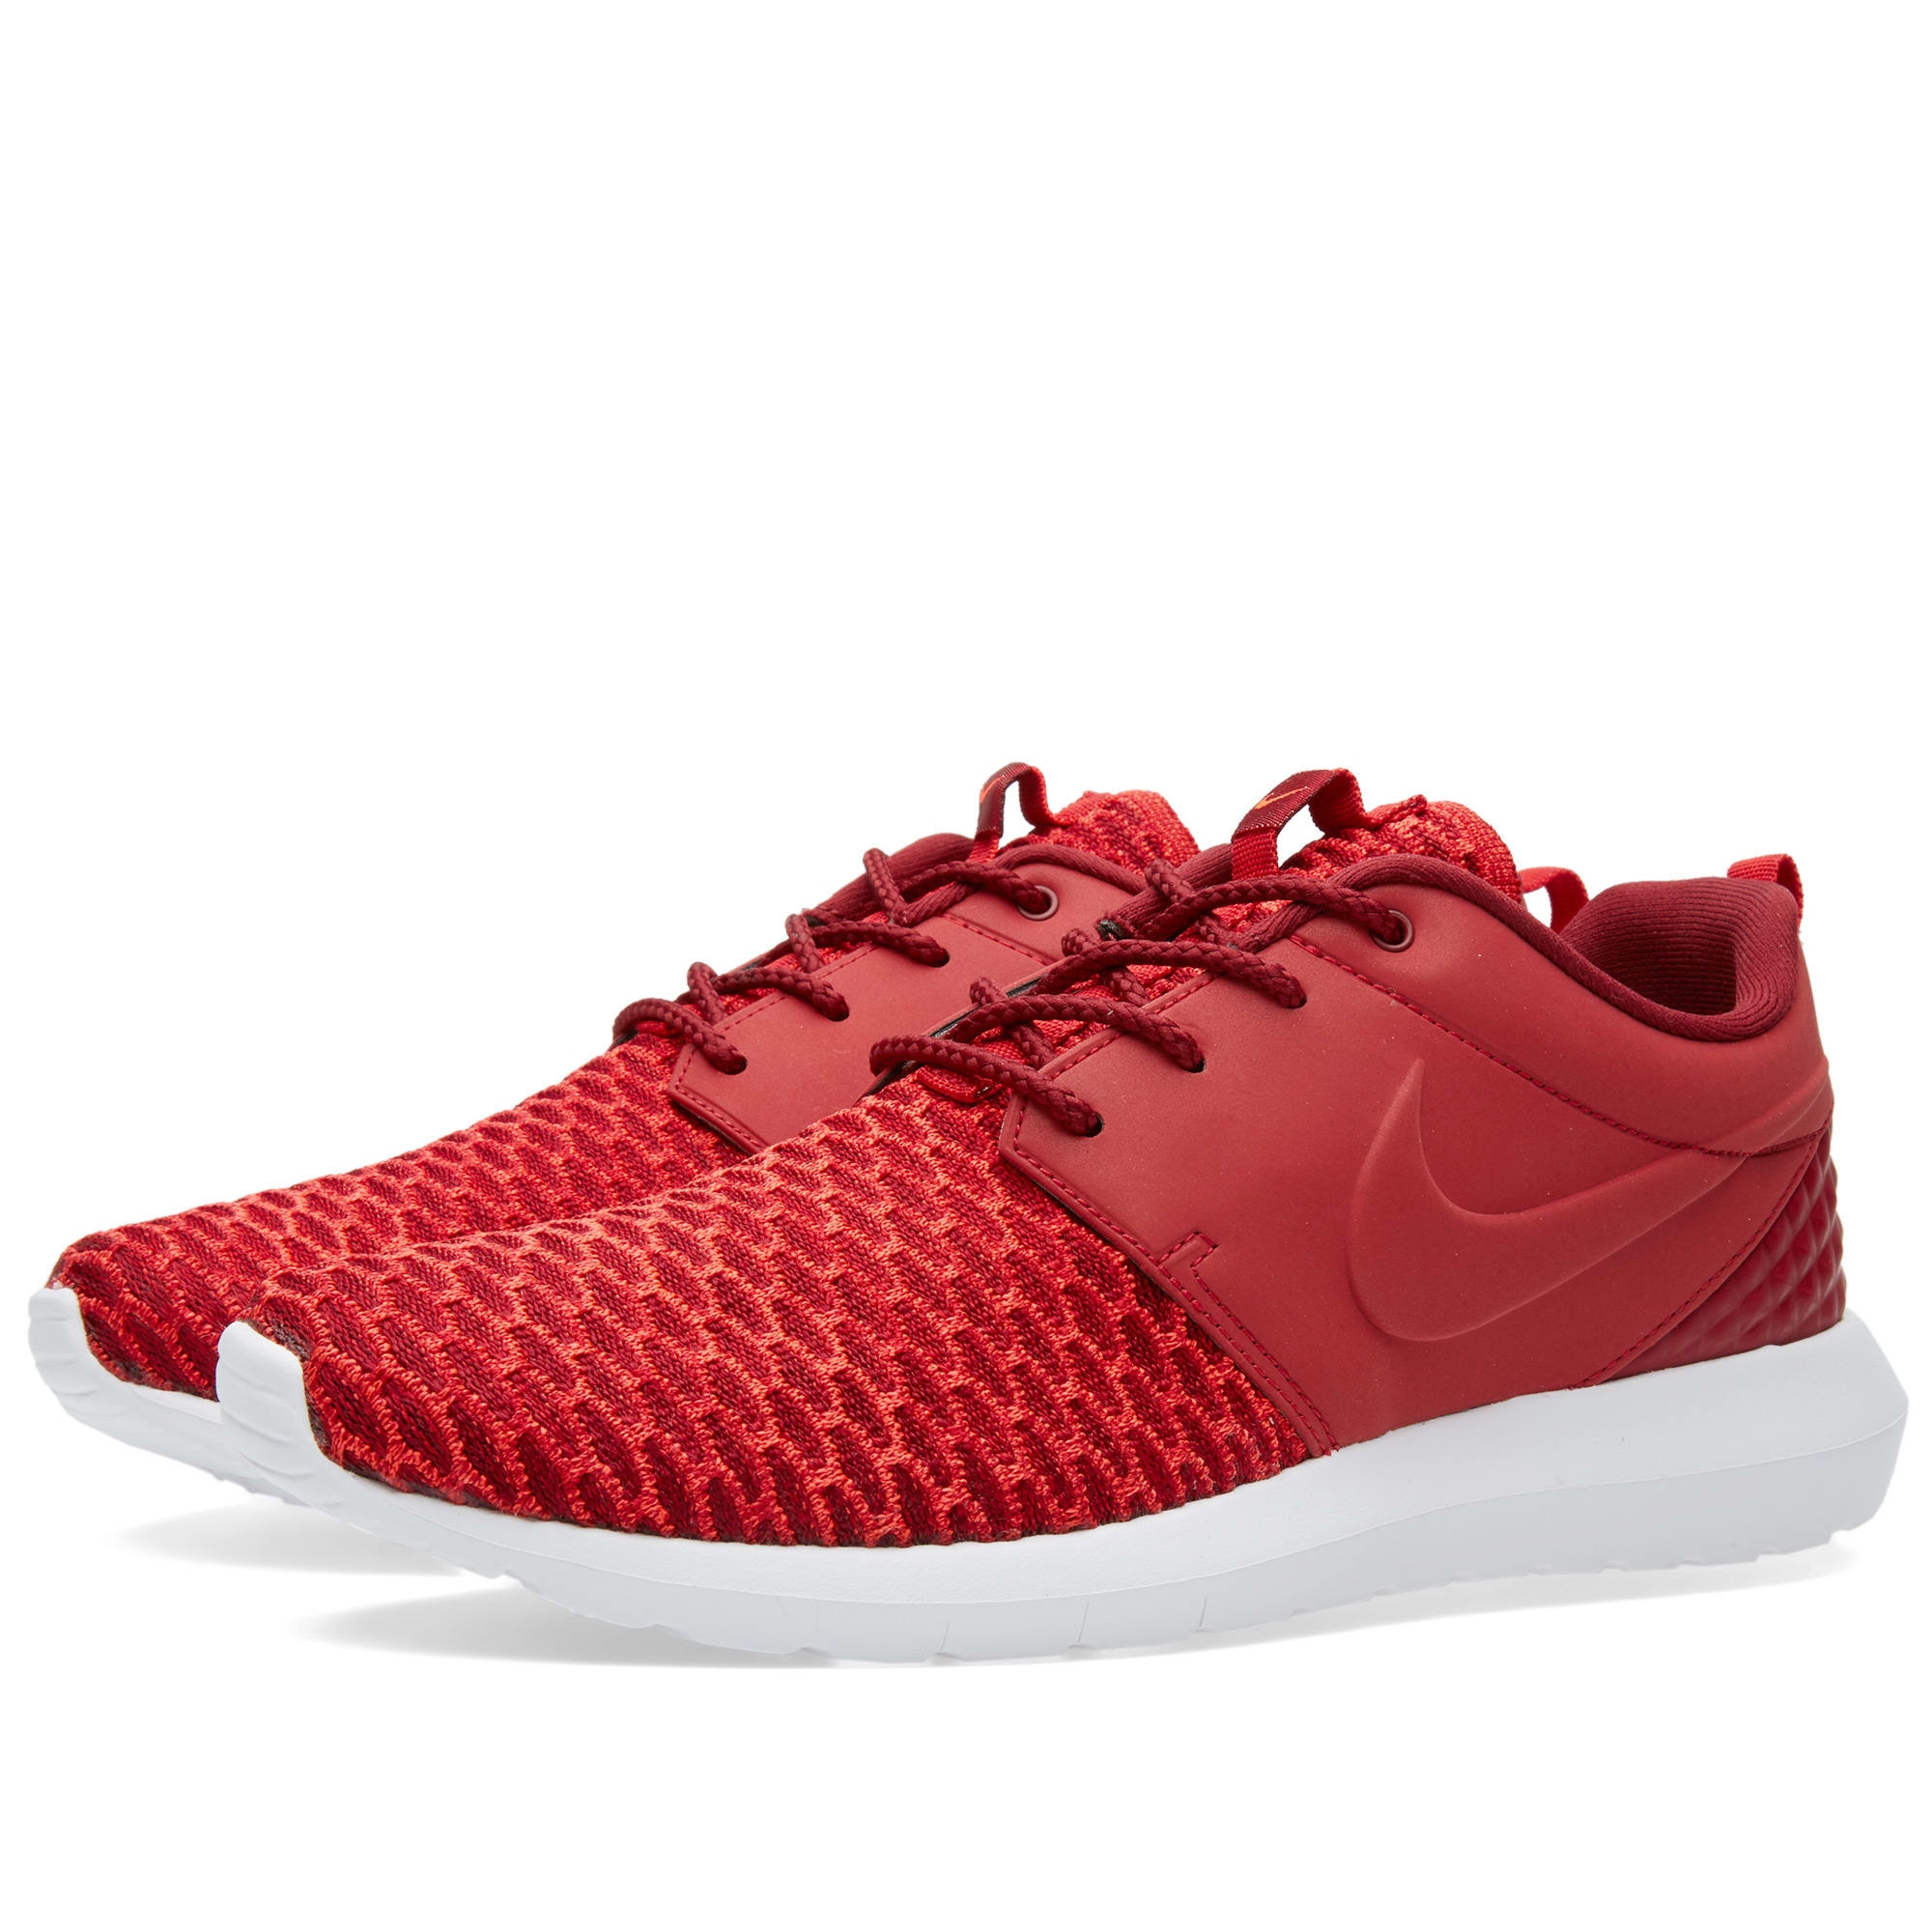 3bc034c232e6b Nike Roshe One NM Flyknit Premium Gym Red   Team Red